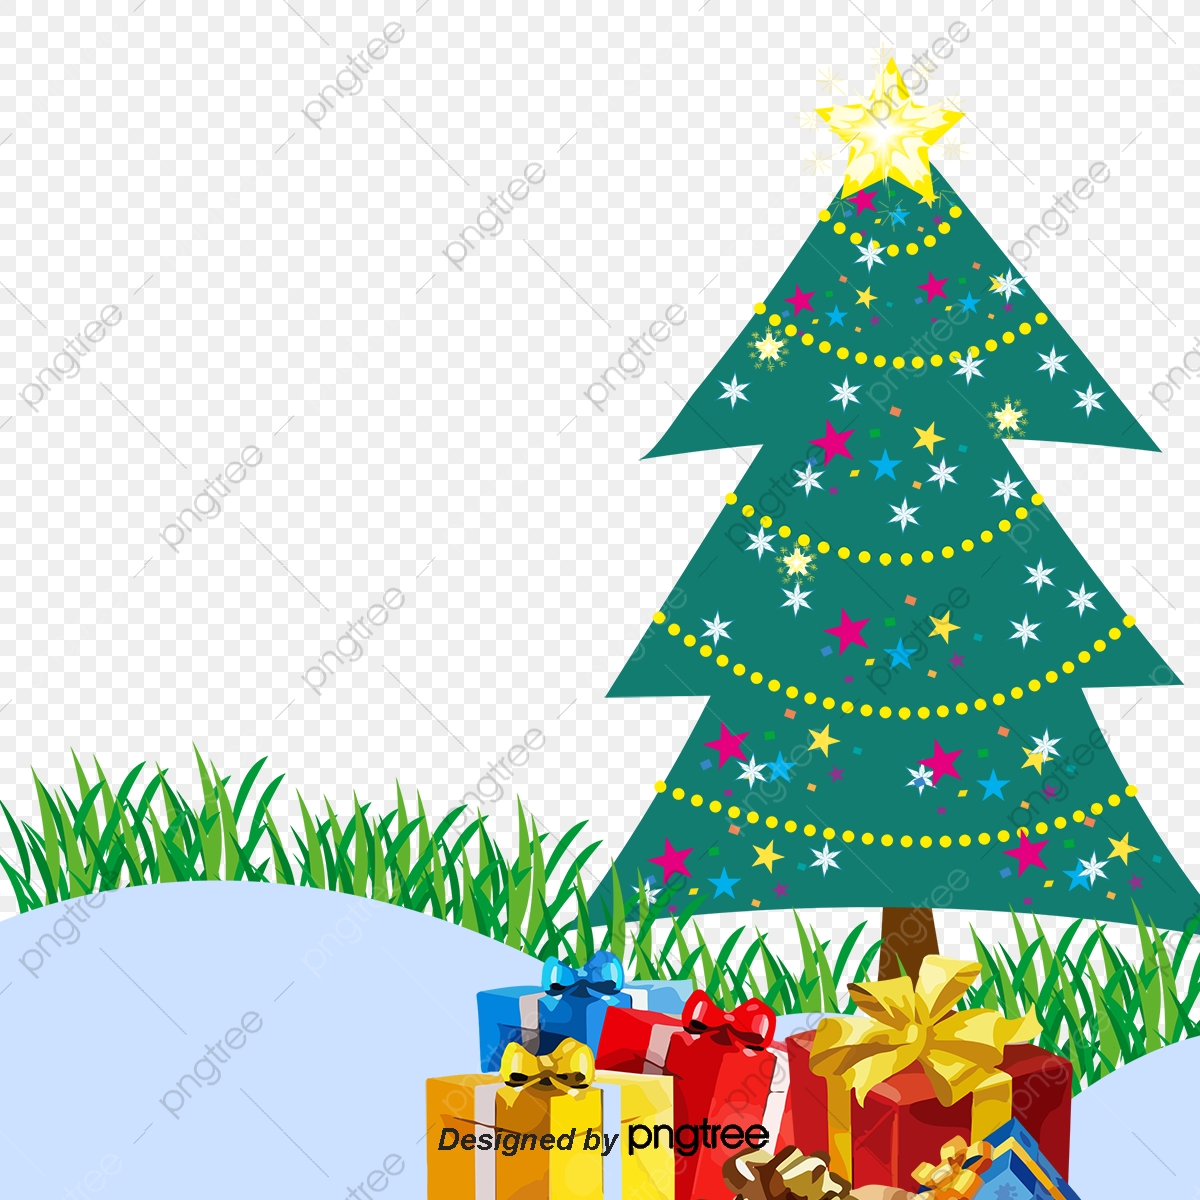 Christmas Gift Clipart.Background Christmas Gift Boxes Under The Christmas Tree